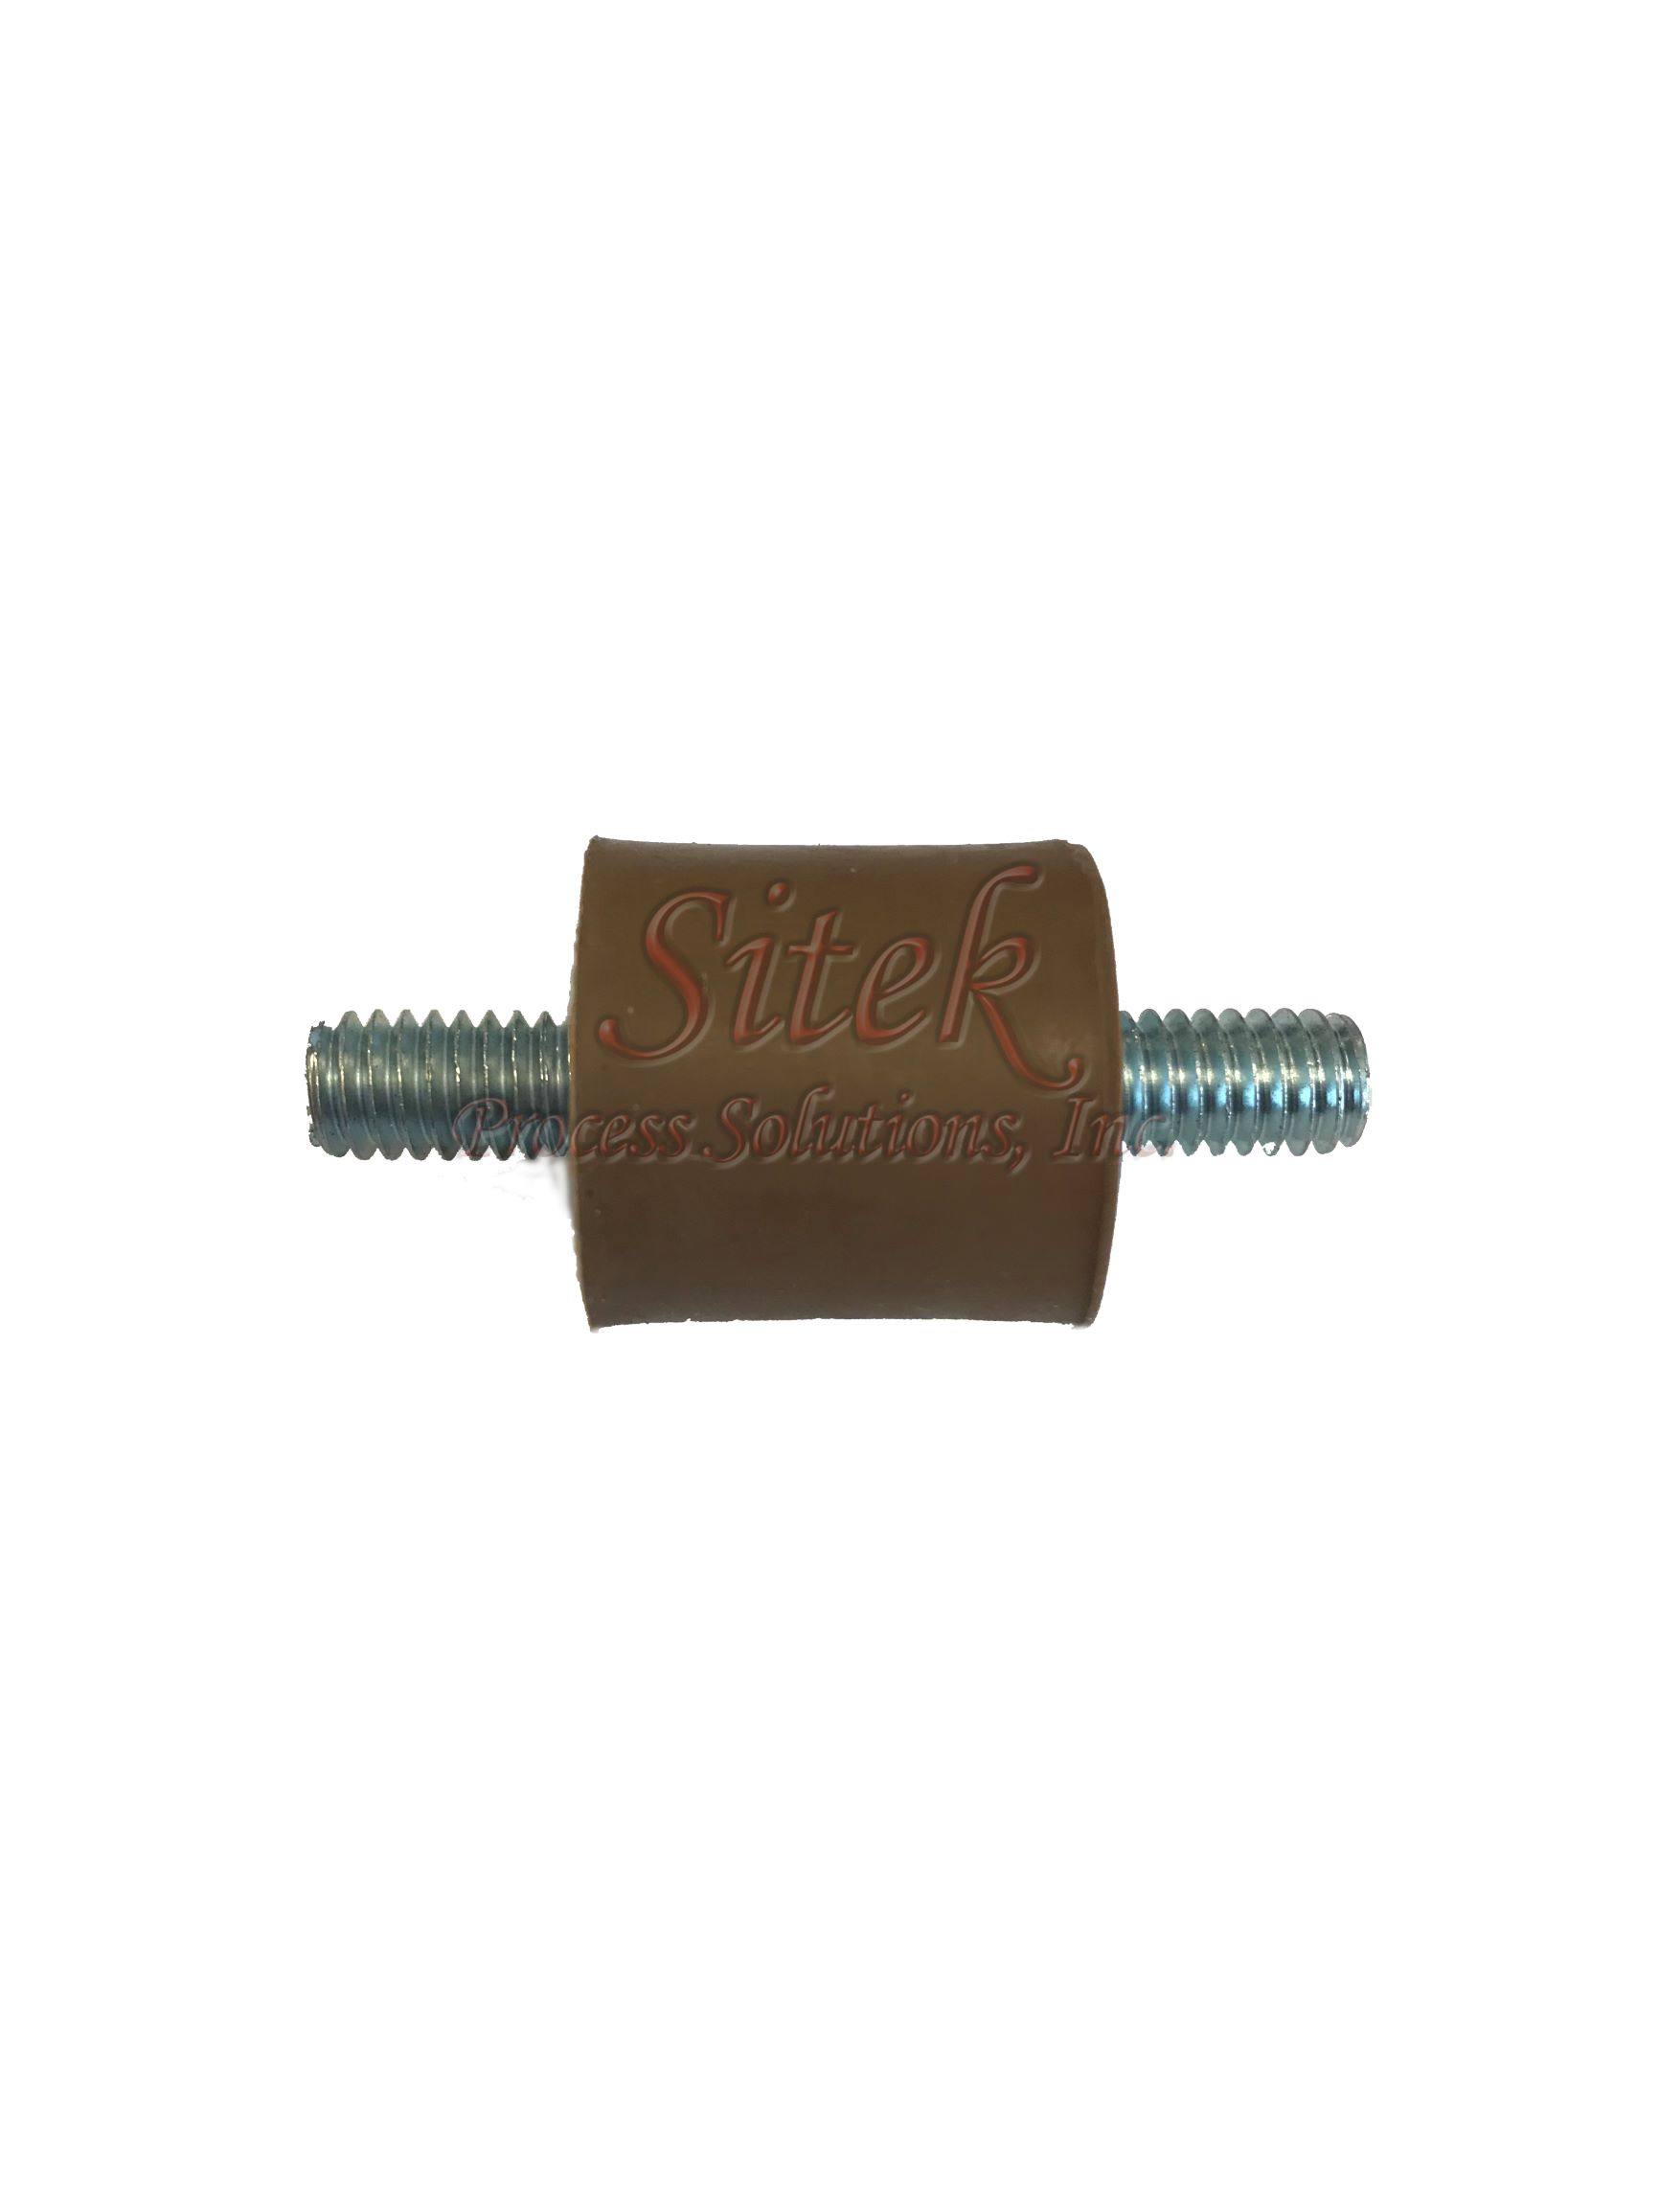 Isolators, Motor Vibration, Grommet